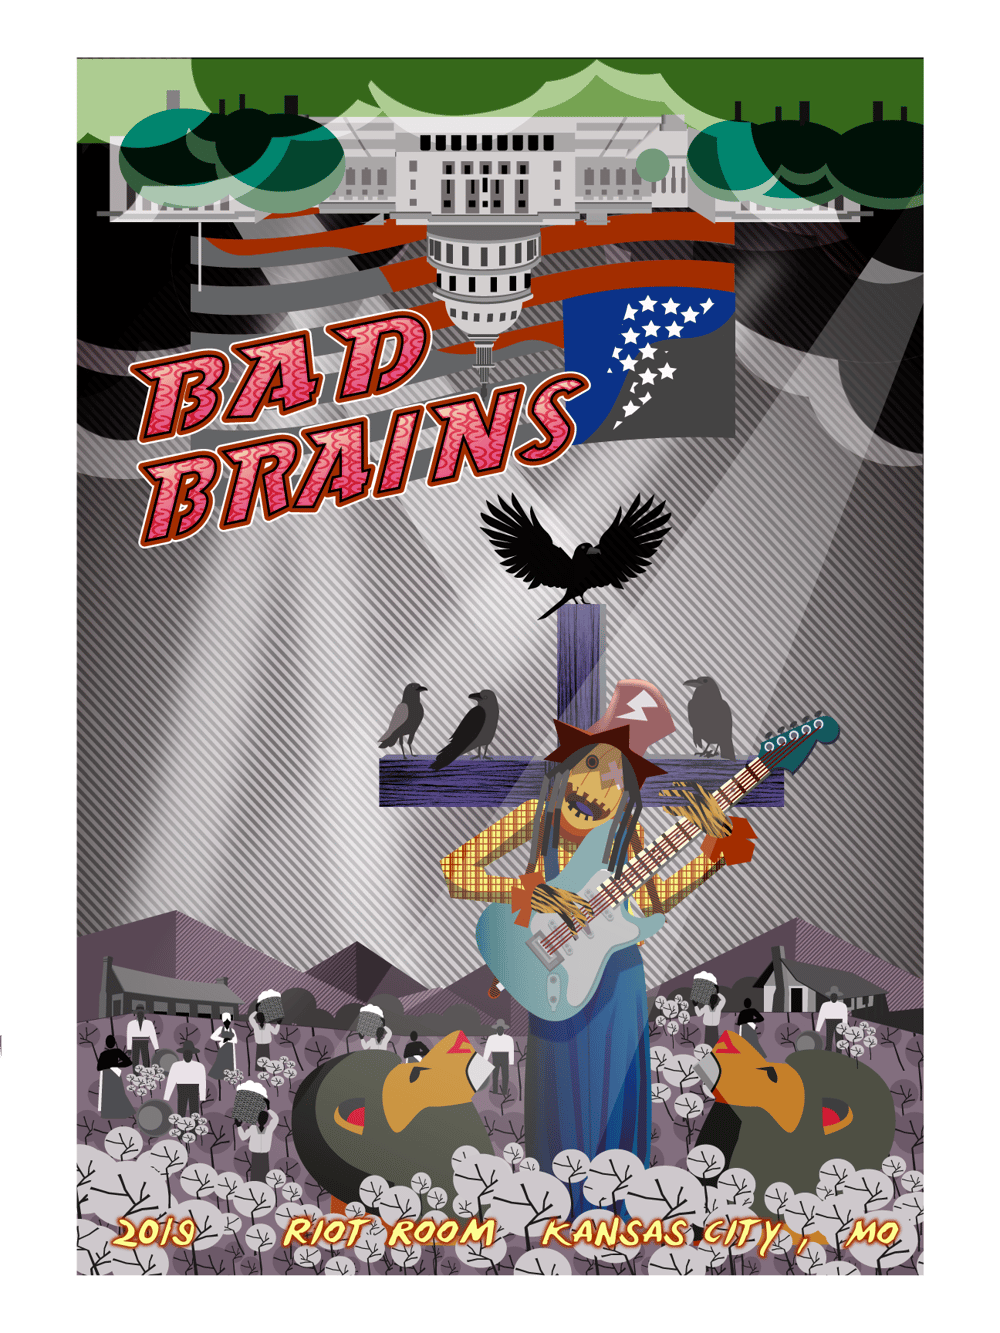 rockposter (Bad Brains) - image 4 - student project